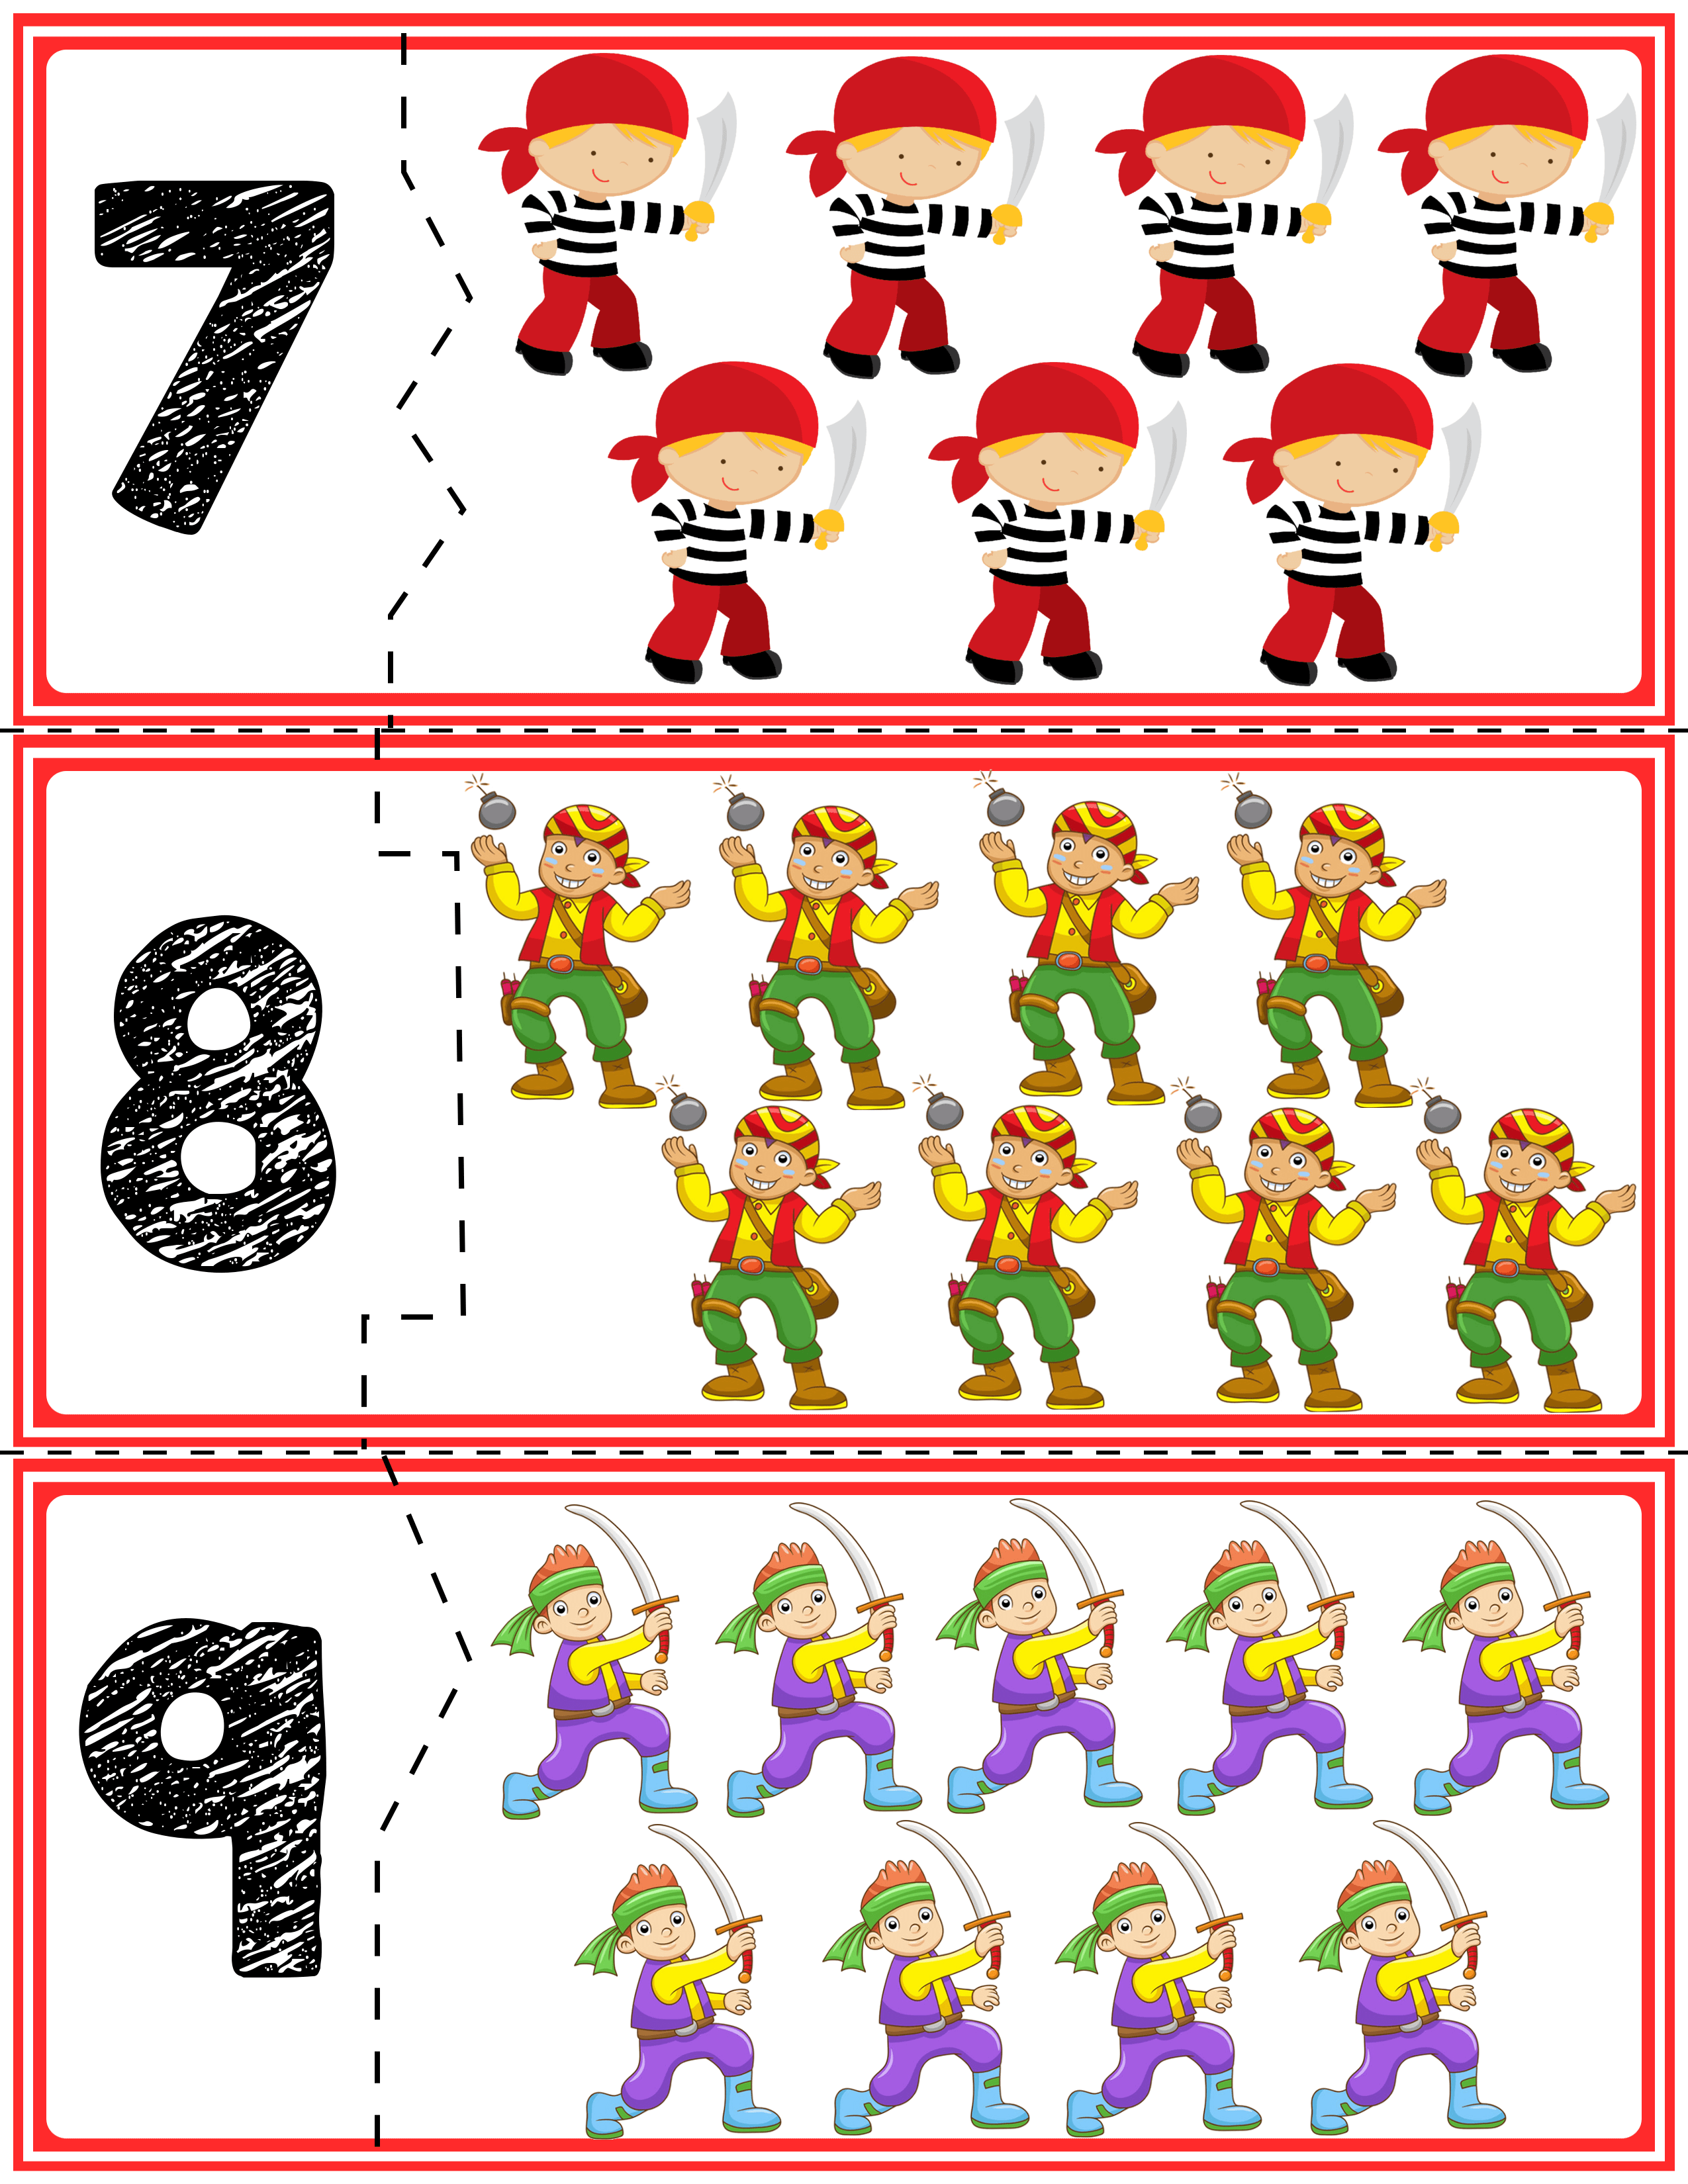 2 Teach Counting Skills With Pirates Great For Teaching 1 1 Counting Skills And Number Recognition For Numbe Pirates Preschool Activities Teaching Counting [ 3300 x 2550 Pixel ]